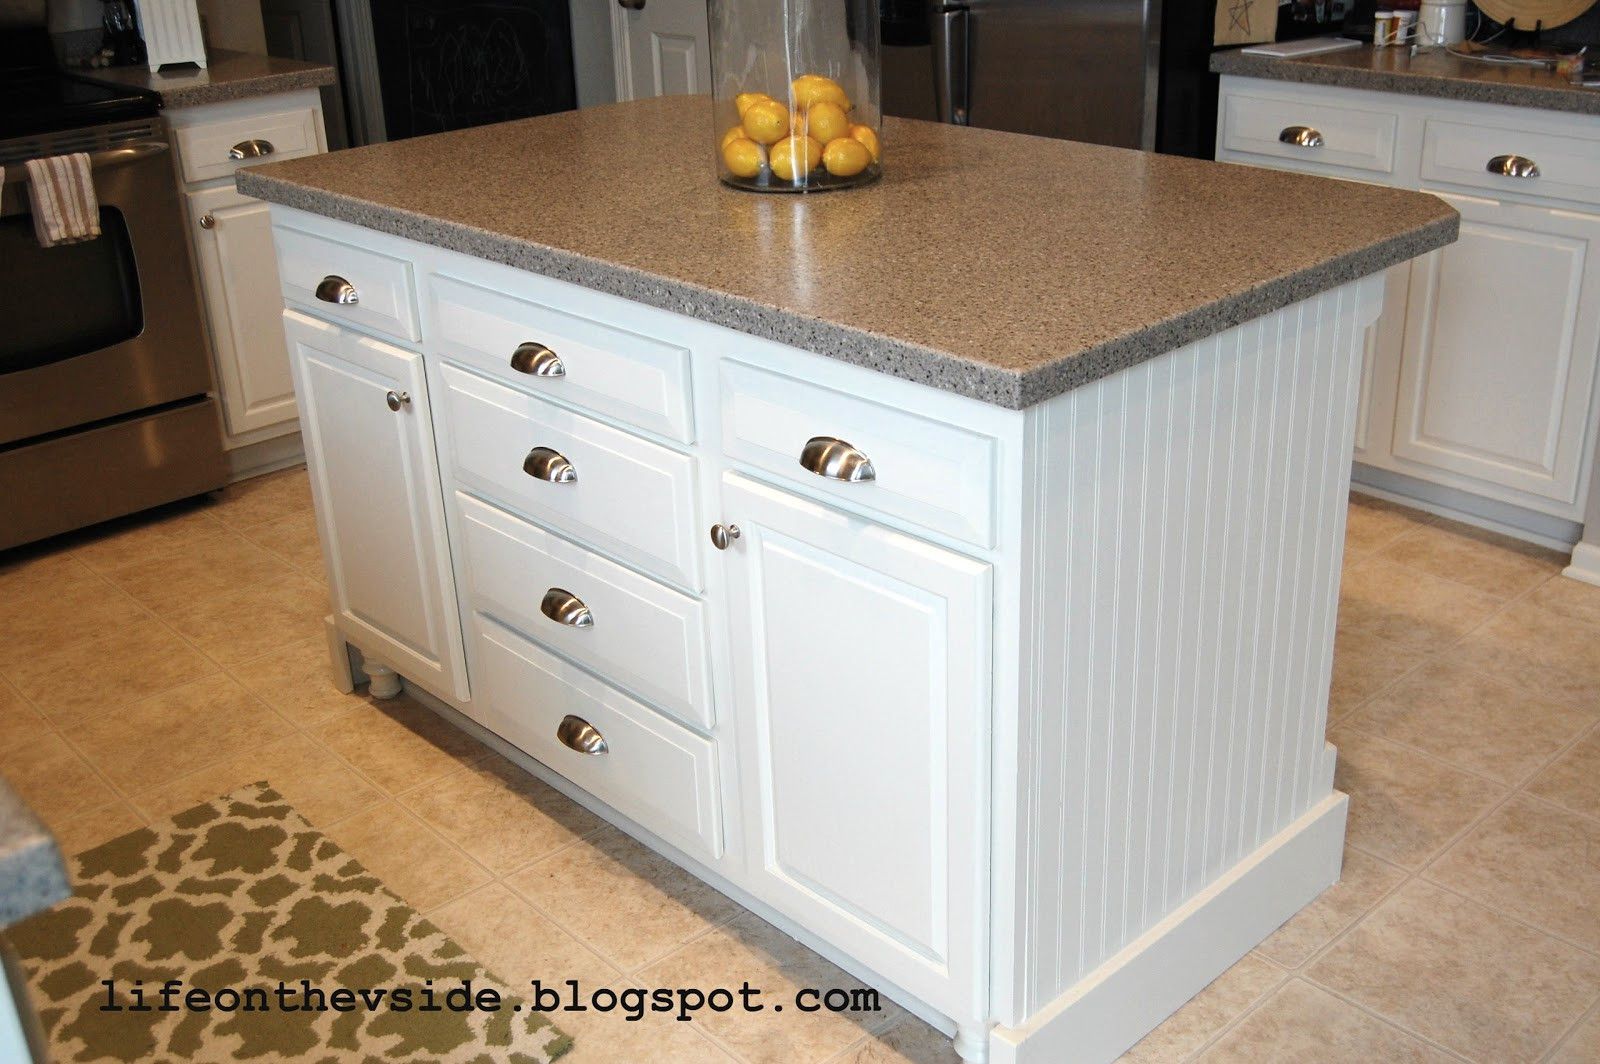 Best ideas about DIY Kitchen Island From Cabinets . Save or Pin the V Side DIY Kitchen Island Update Now.